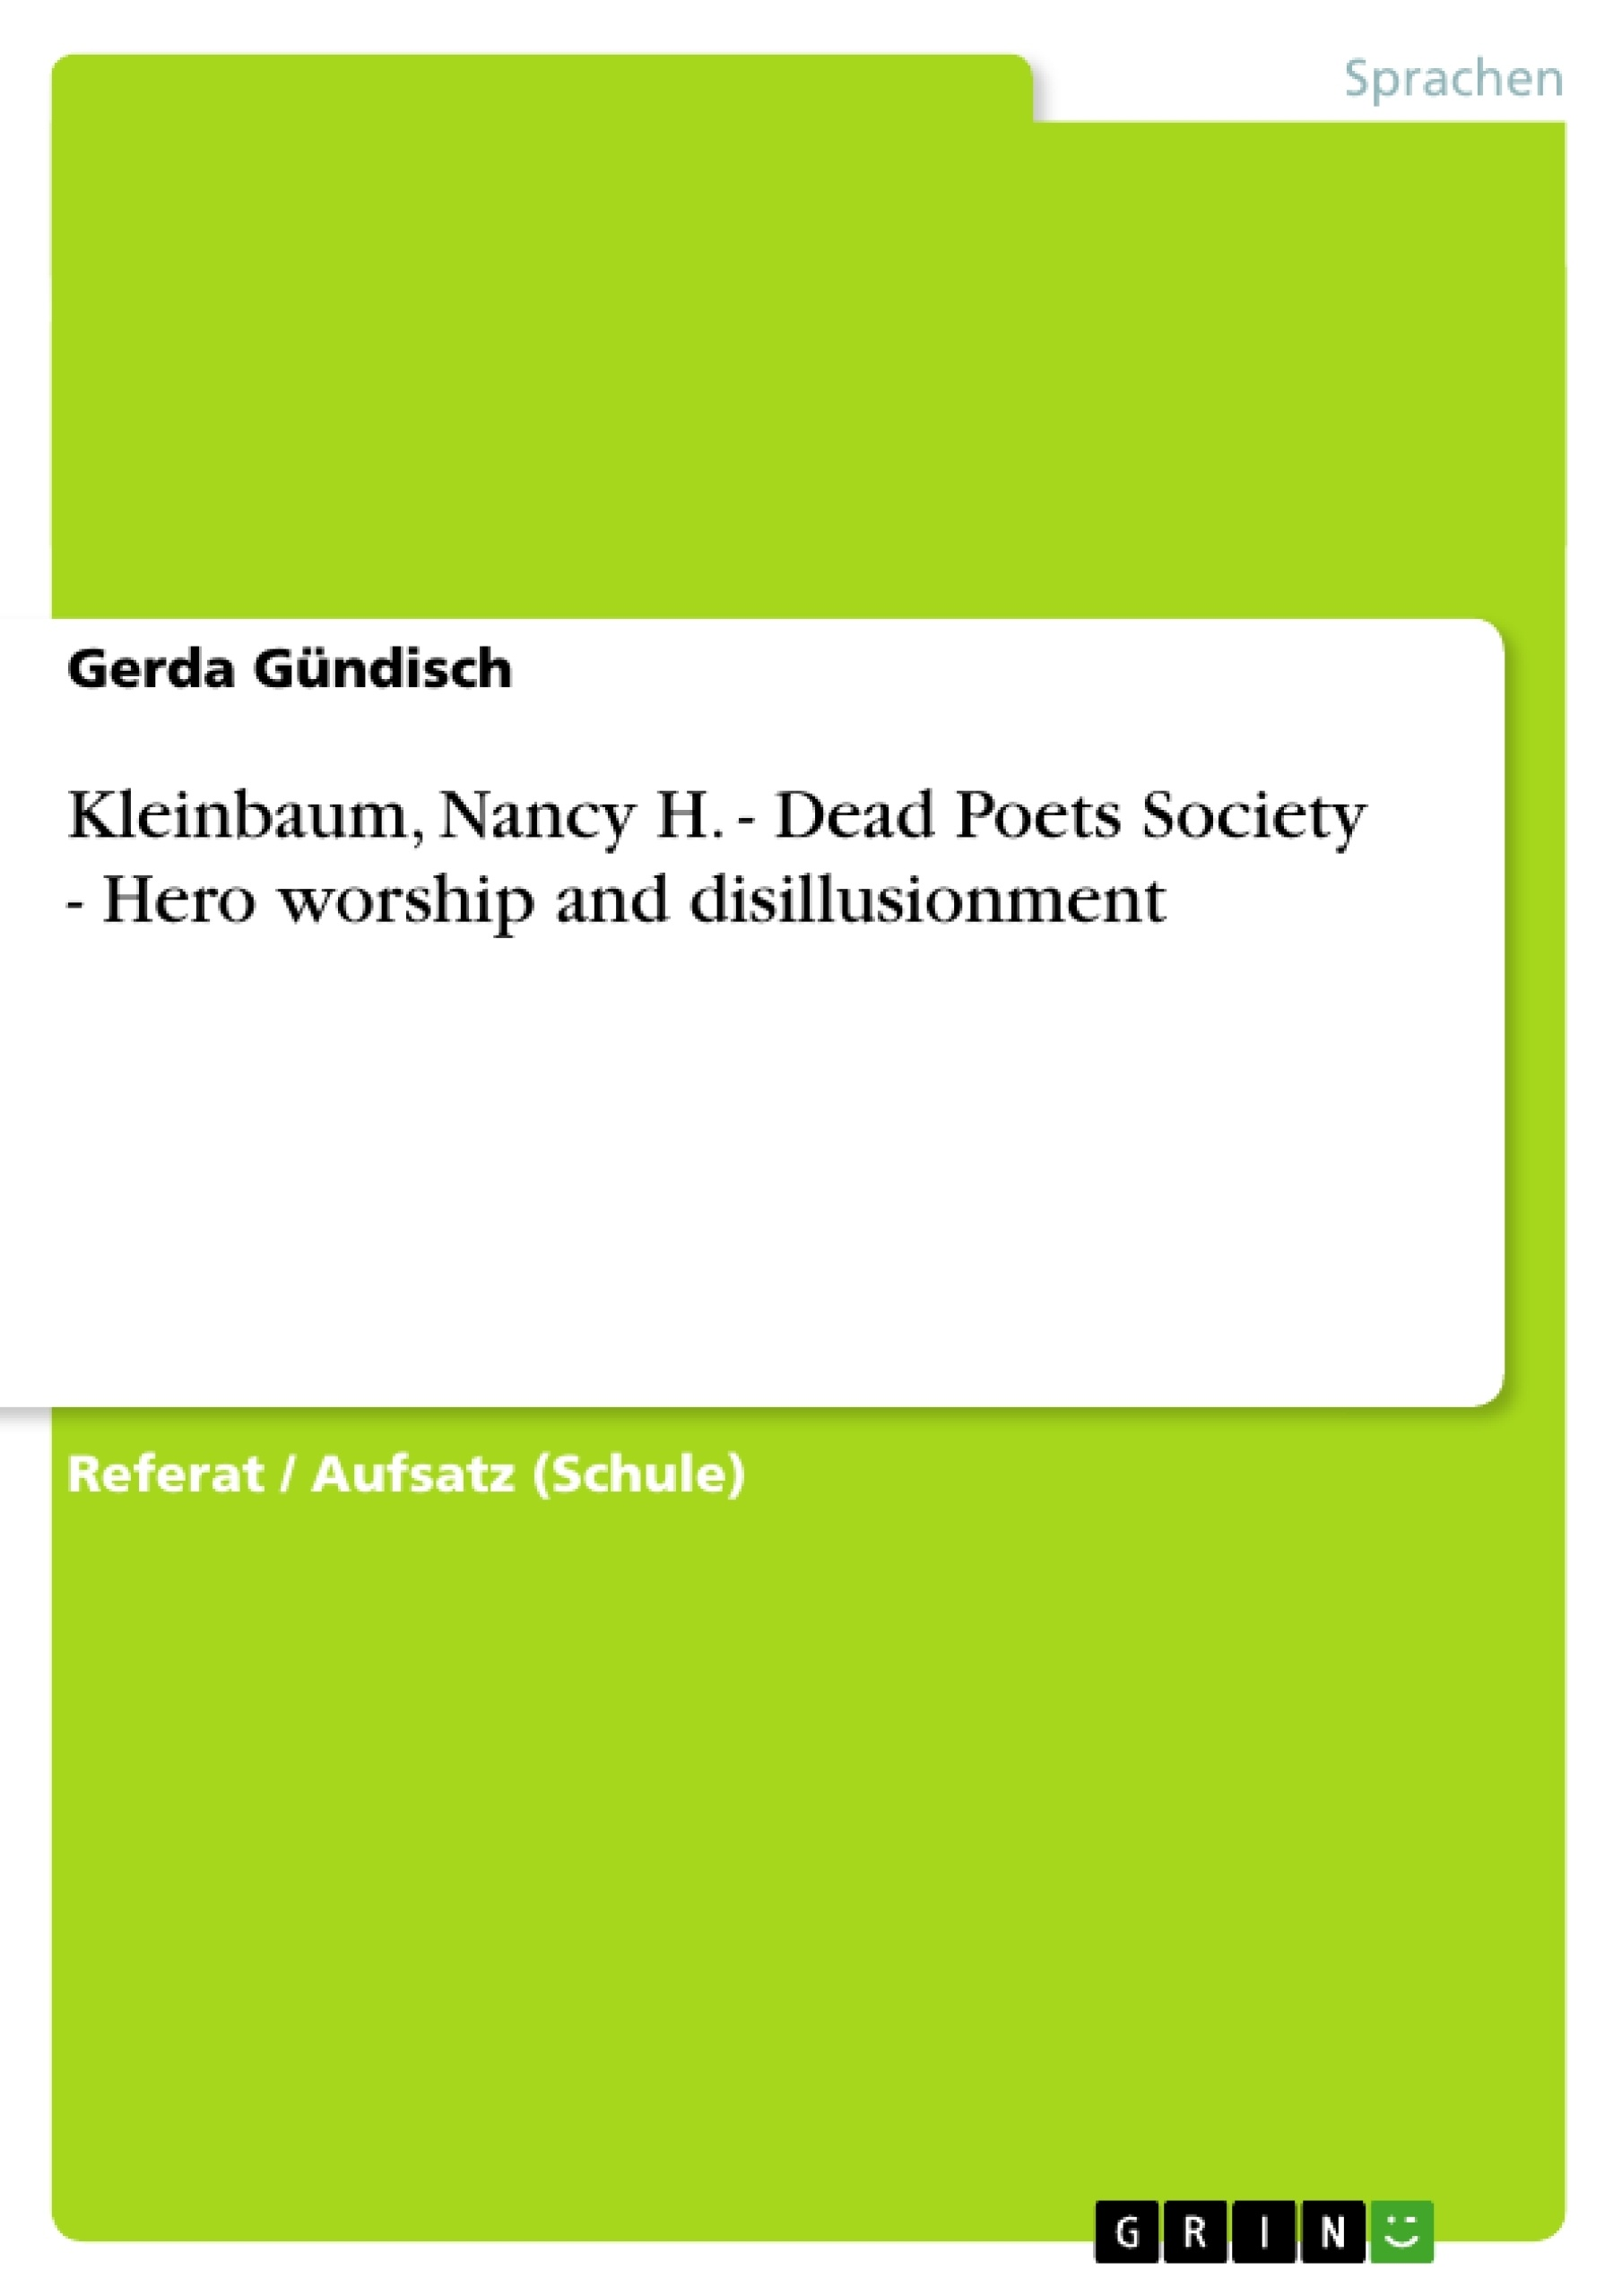 Titel: Kleinbaum, Nancy H. - Dead Poets Society - Hero worship and disillusionment